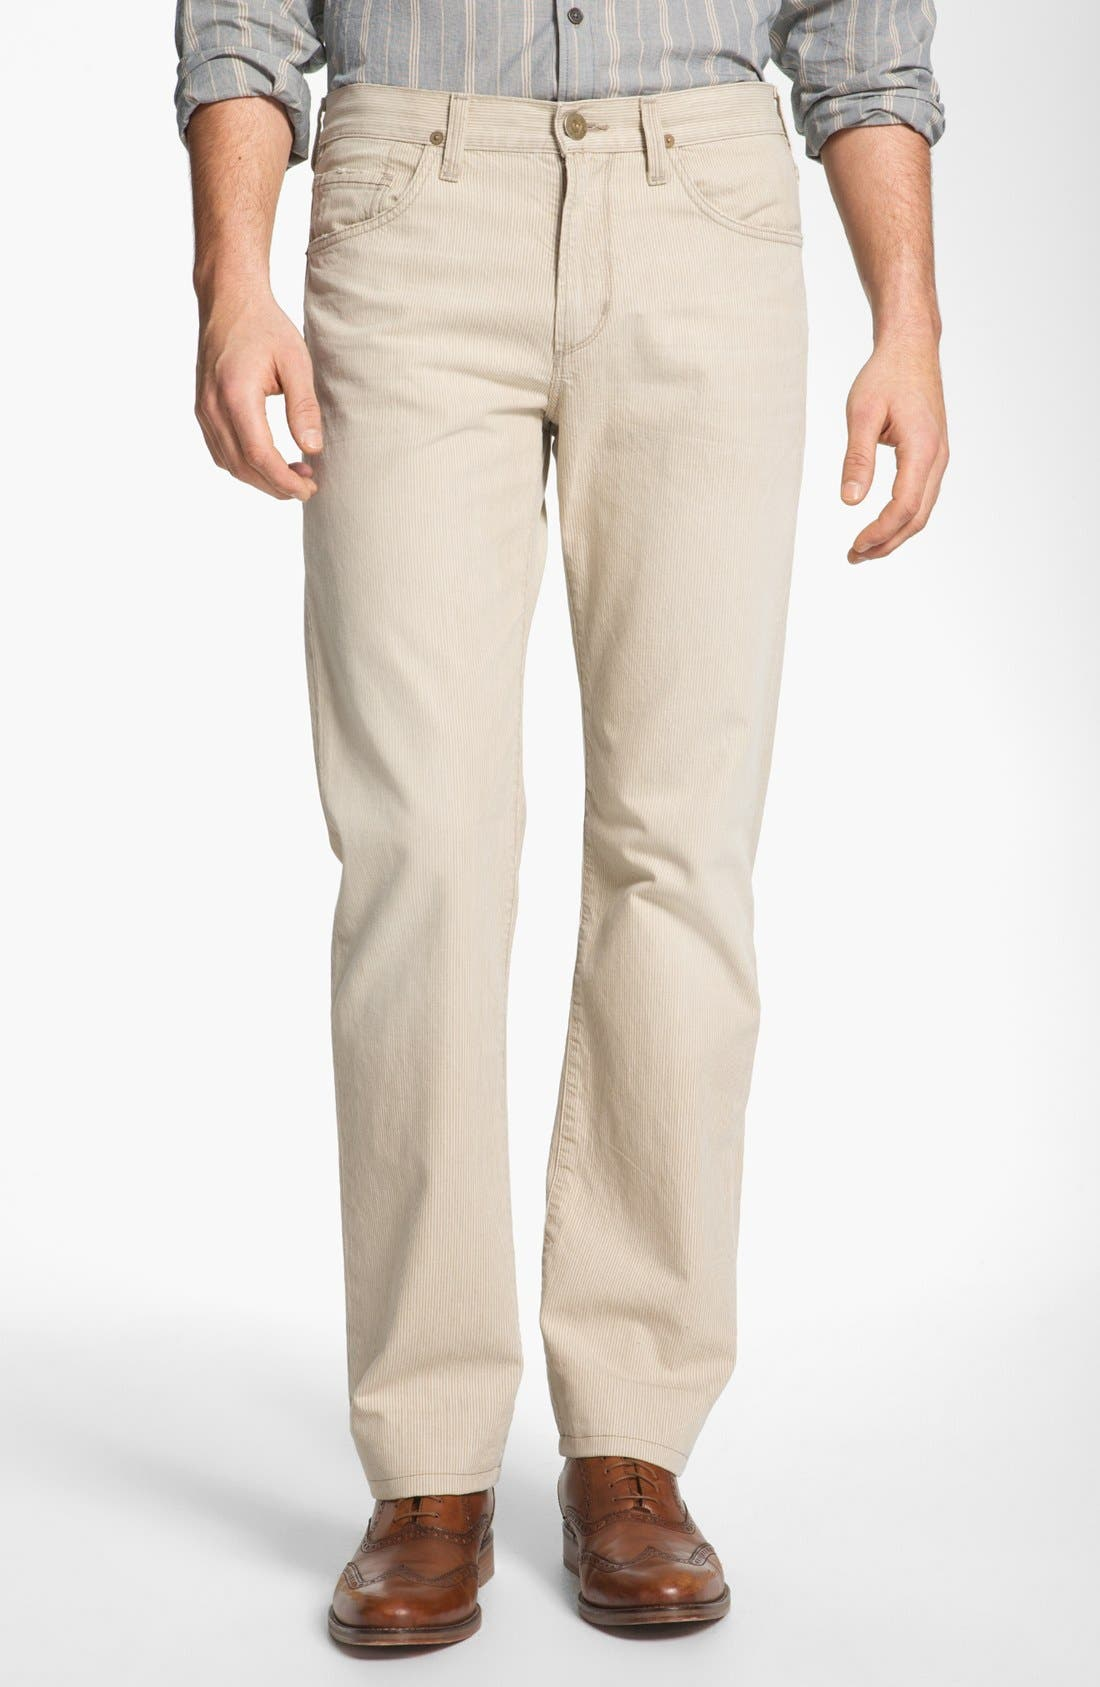 Alternate Image 1 Selected - Citizens of Humanity 'Sid' Straight Leg Jeans (Beckett)